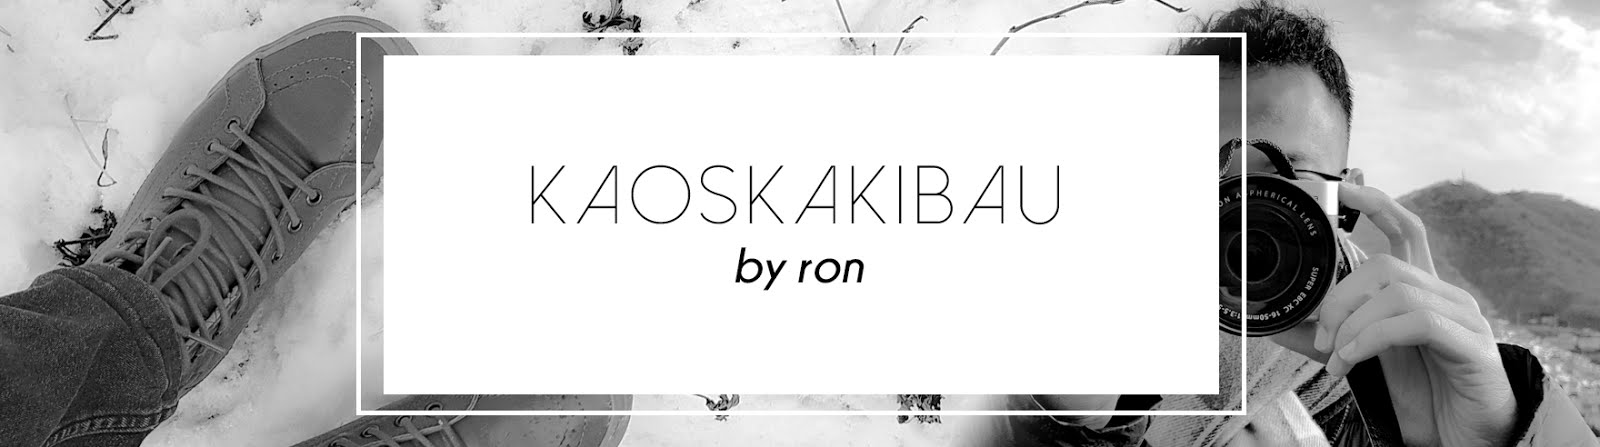 kaoskakibau.com - by ron